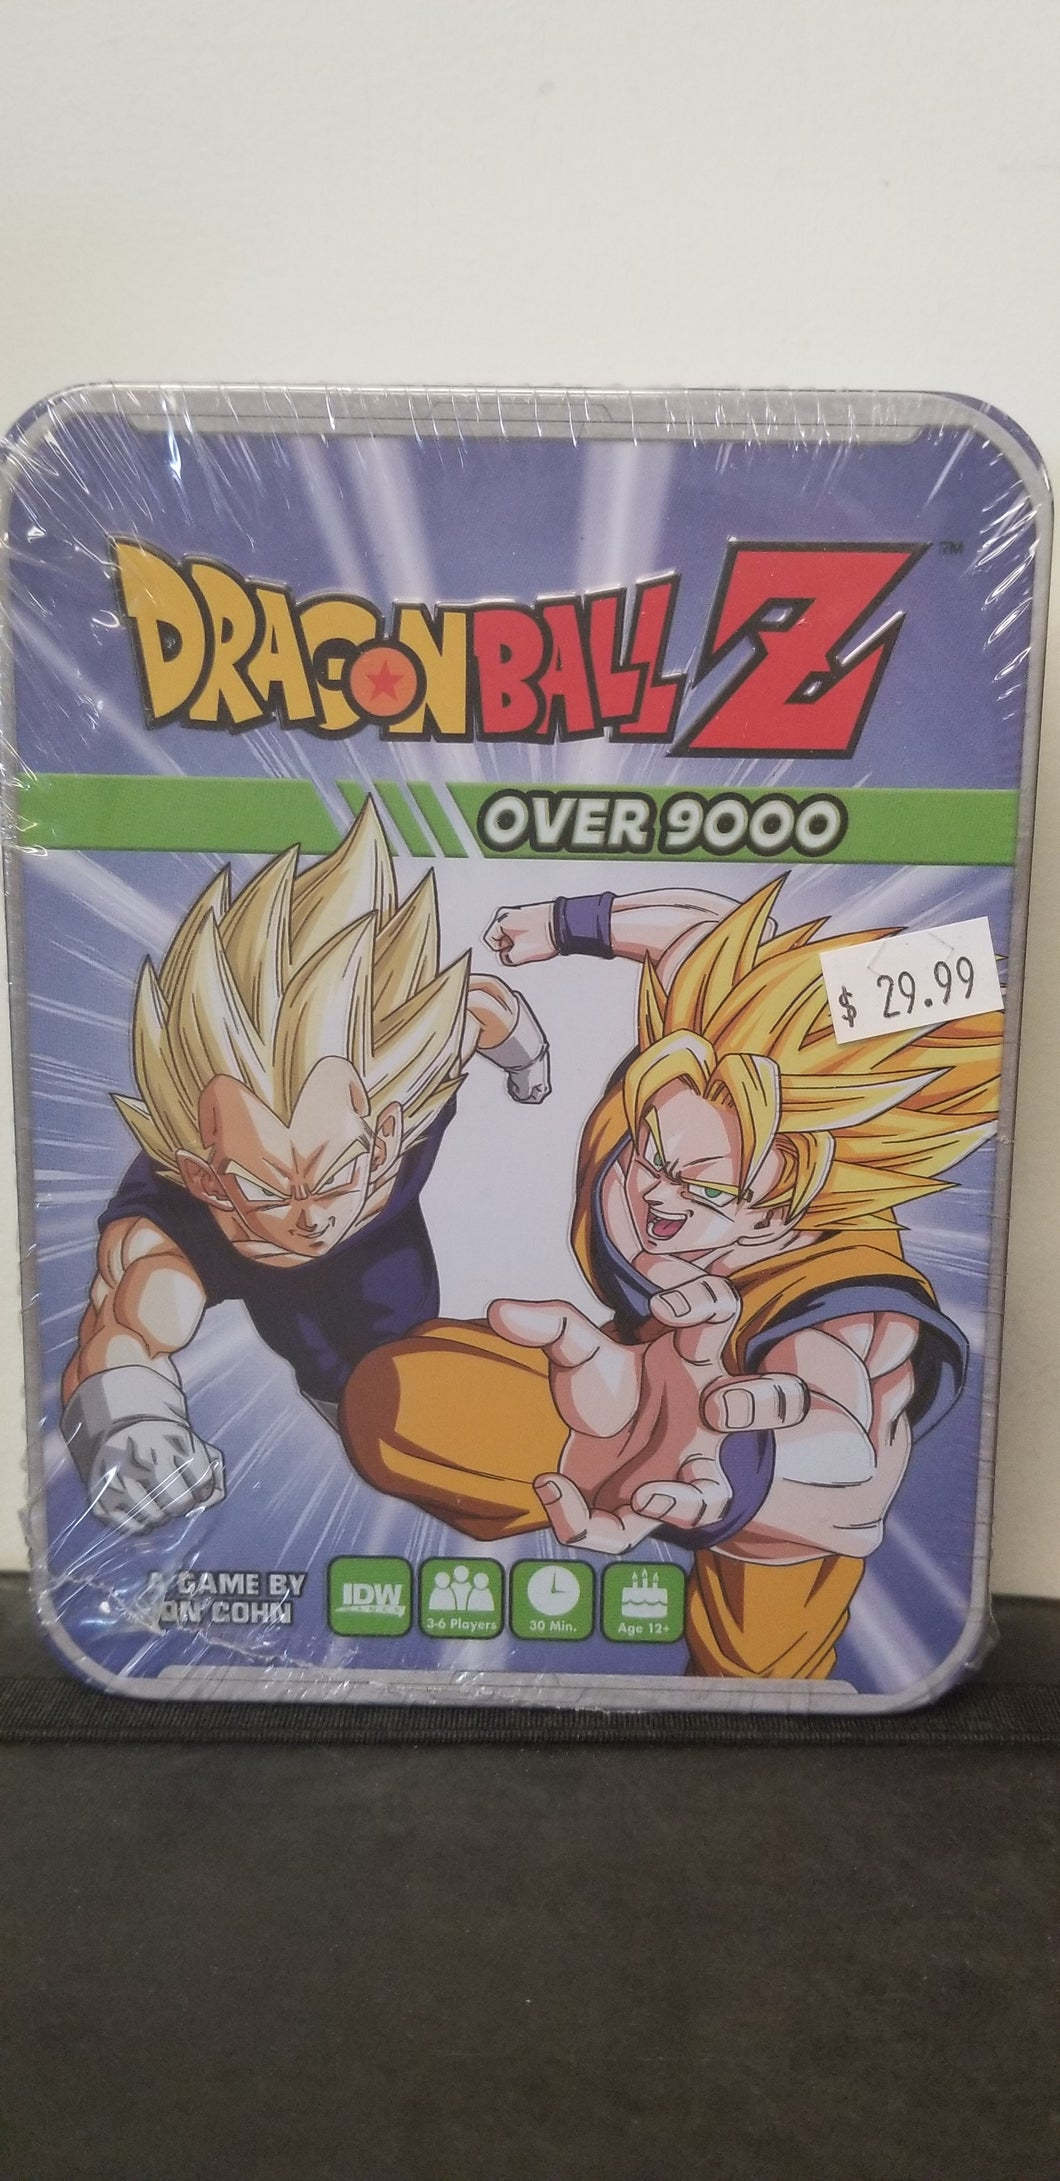 Dragonball Z - Over 9000 Board Game